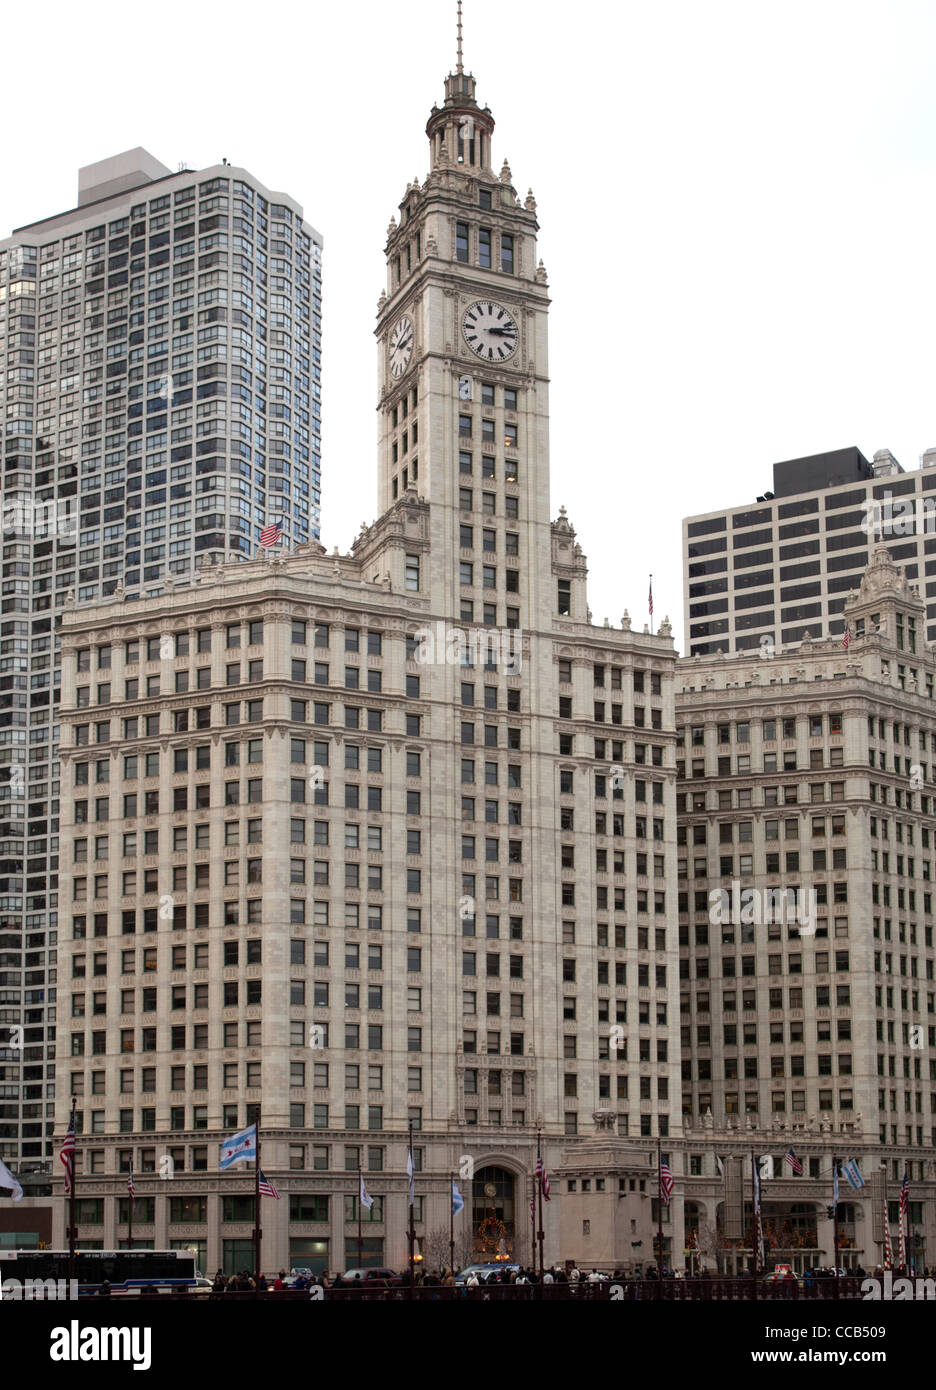 Wrigley building on north michigan avenue on chicagos near north wrigley building on north michigan avenue on chicagos near north side buycottarizona Images